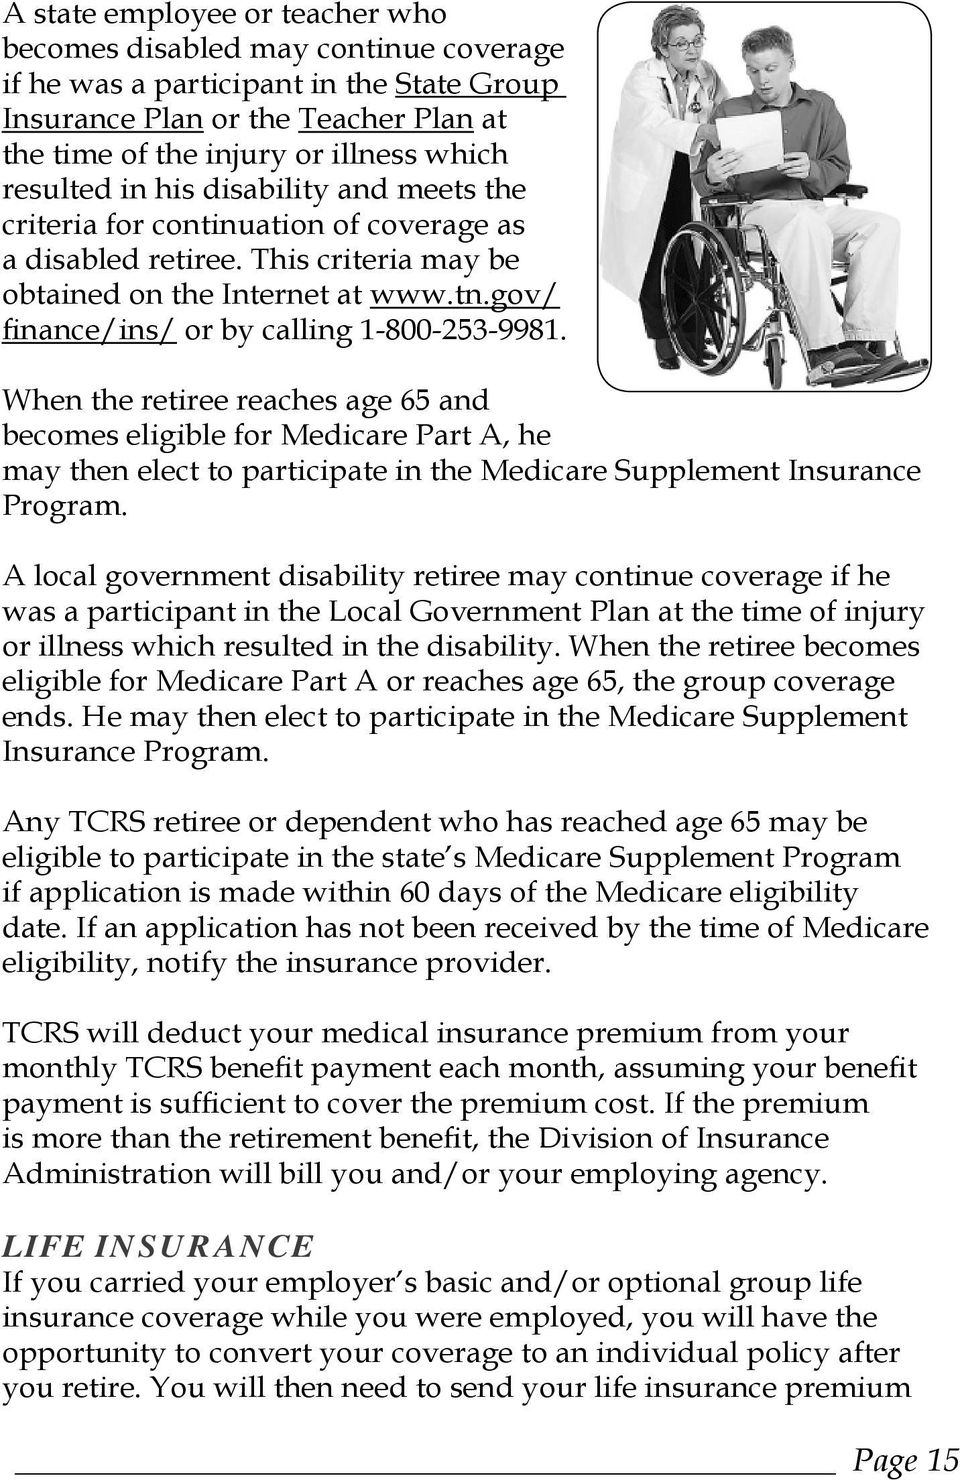 gov/ finance/ins/ or by calling 1-800-253-9981. When the retiree reaches age 65 and becomes eligible for Medicare Part A, he may then elect to participate in the Medicare Supplement Insurance Program.